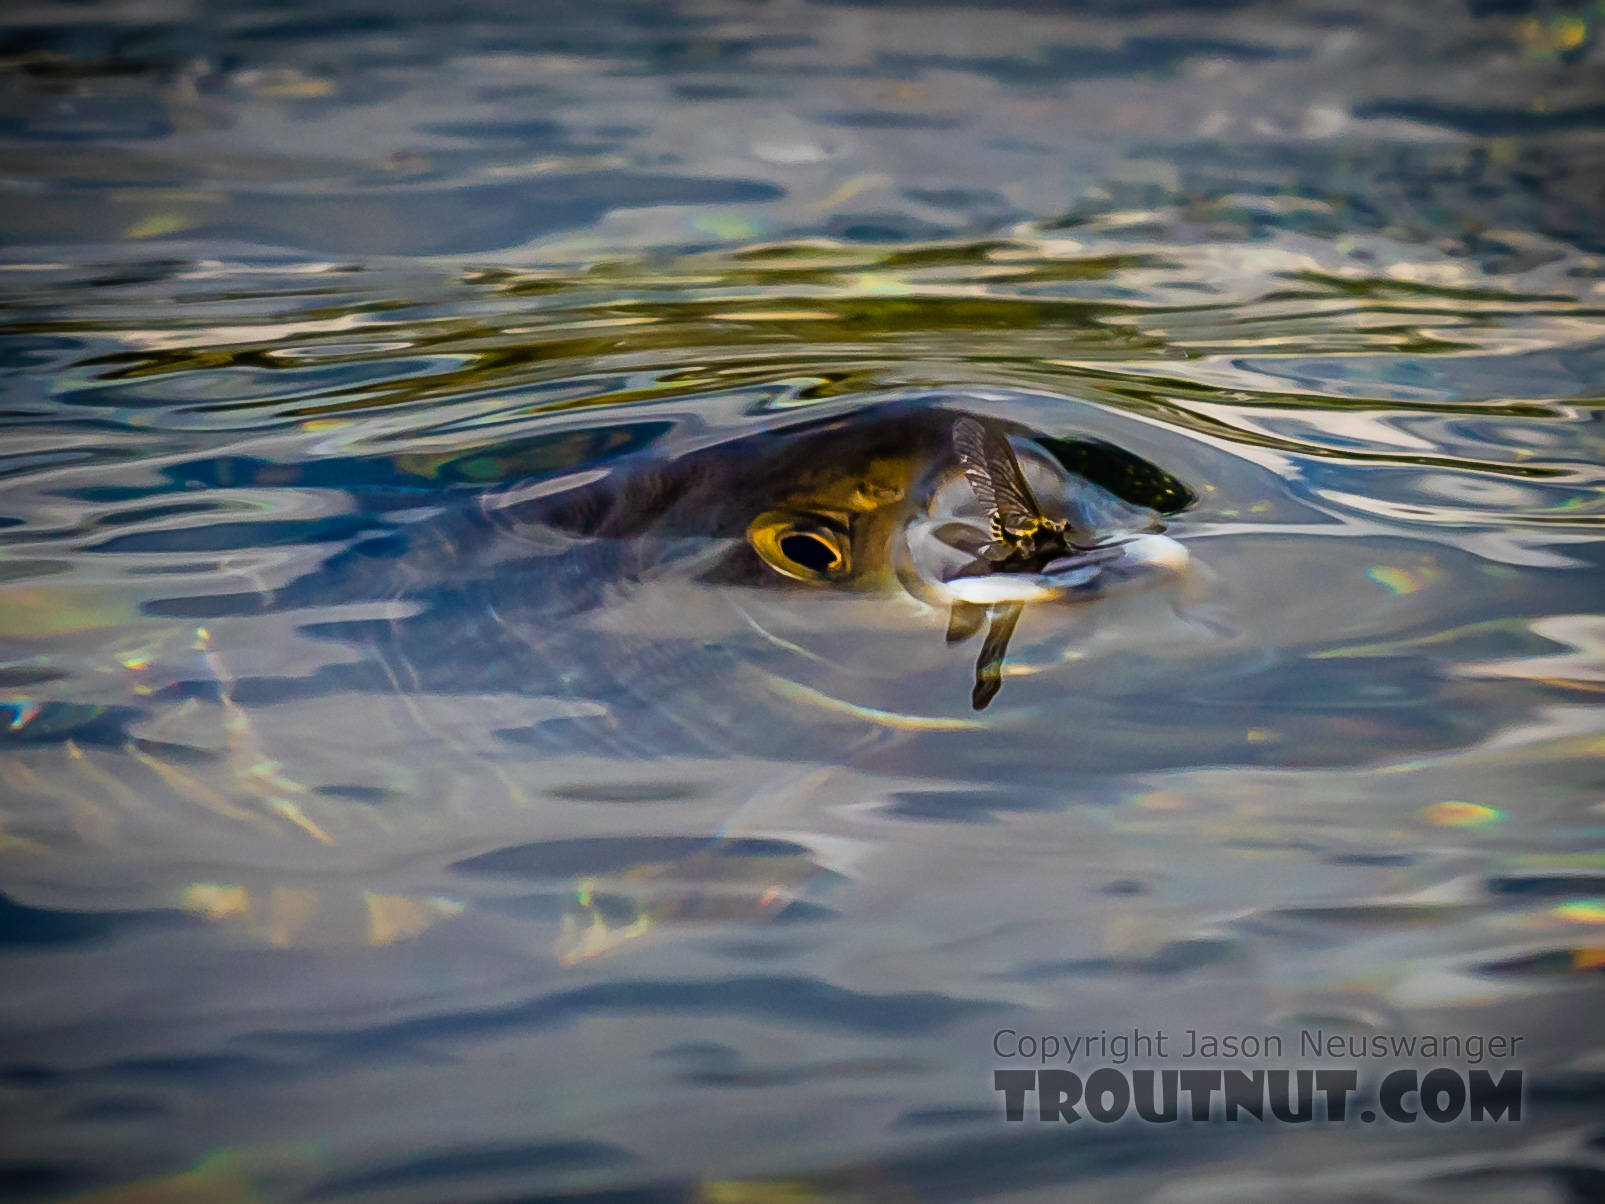 Big Arctic grayling eating a Drunella doddsii mayfly dun. From Mystery Creek # 186 in Alaska.